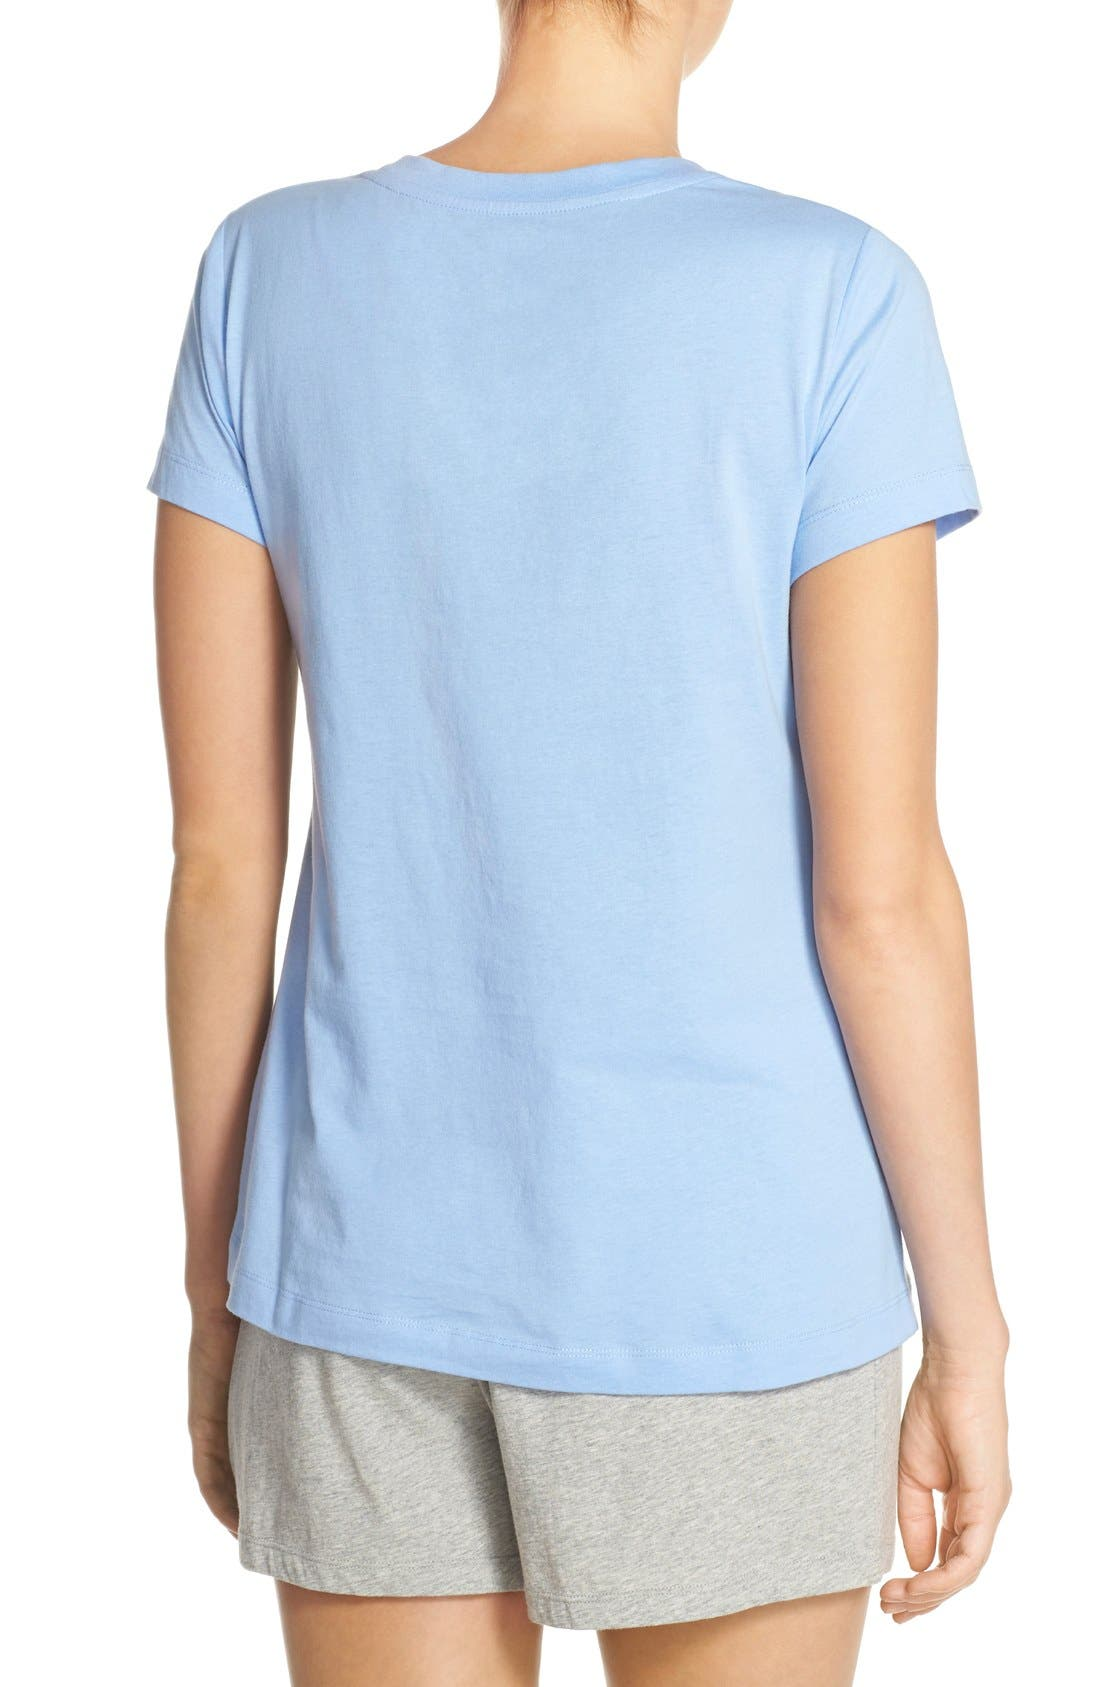 Alternate Image 2  - Lauren by Ralph Lauren Sleepwear Short Sleeve Sleep Tee